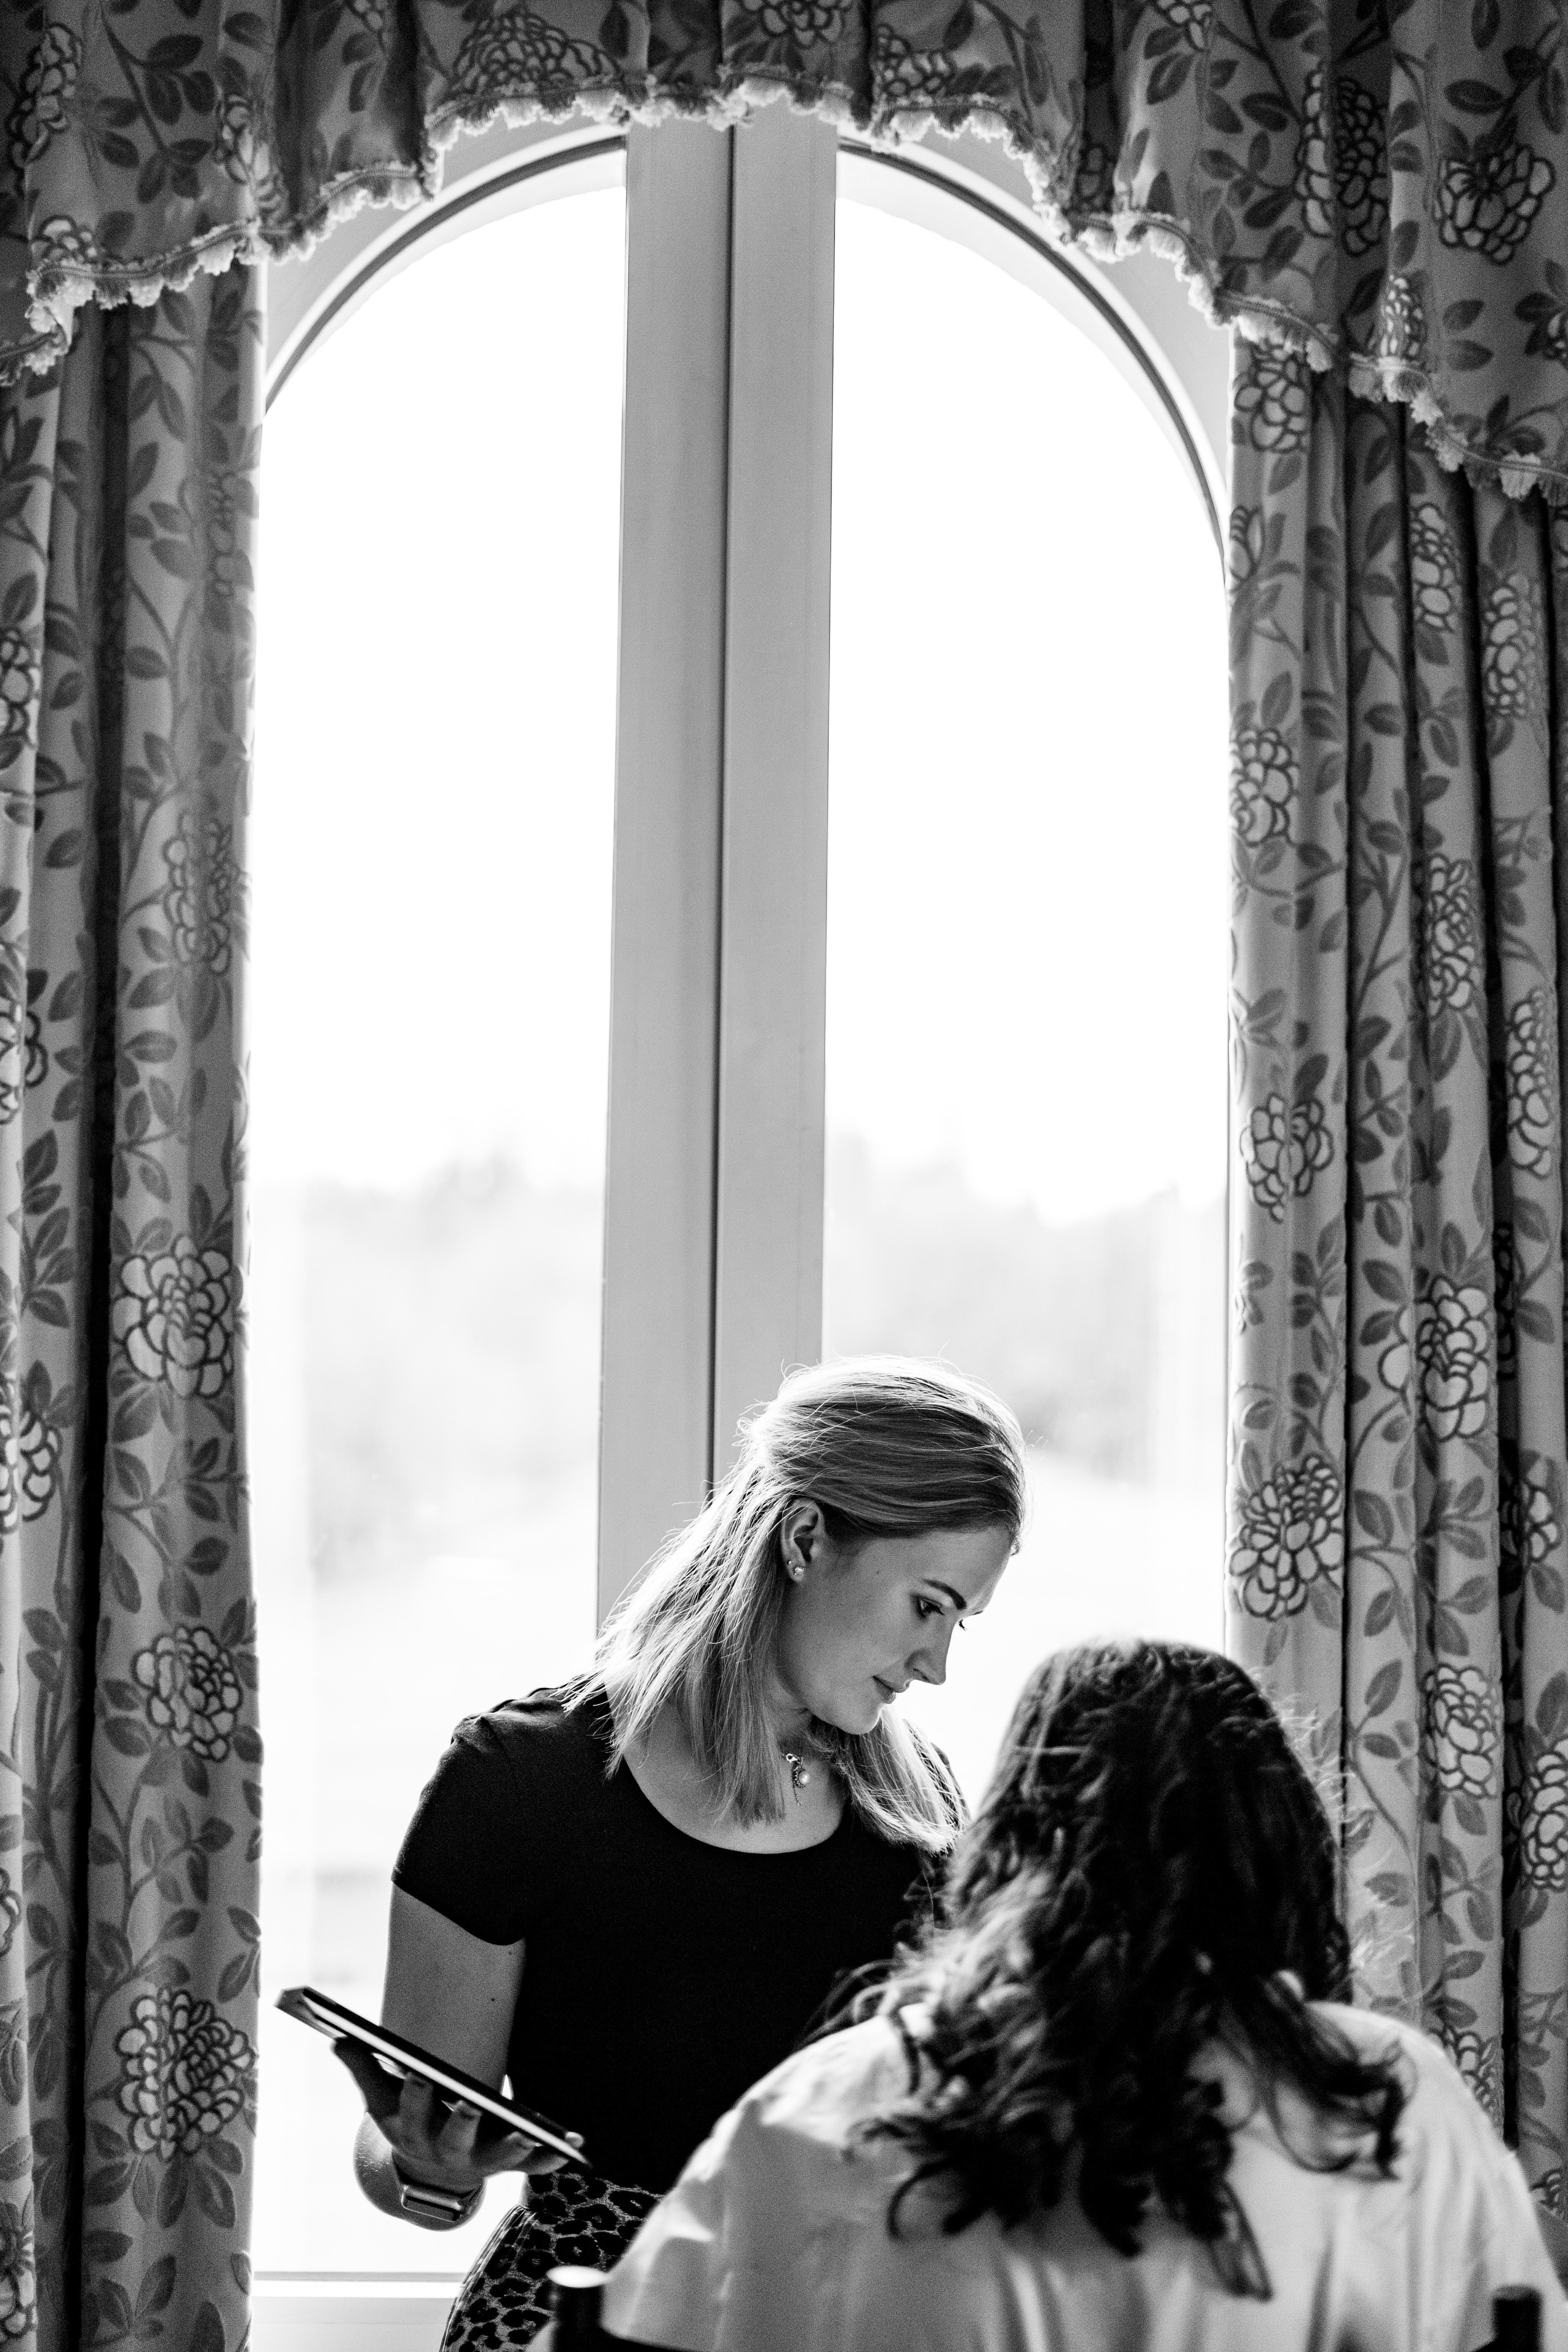 bowood hotel wedding make up being applied to bride Wiltshire photographer